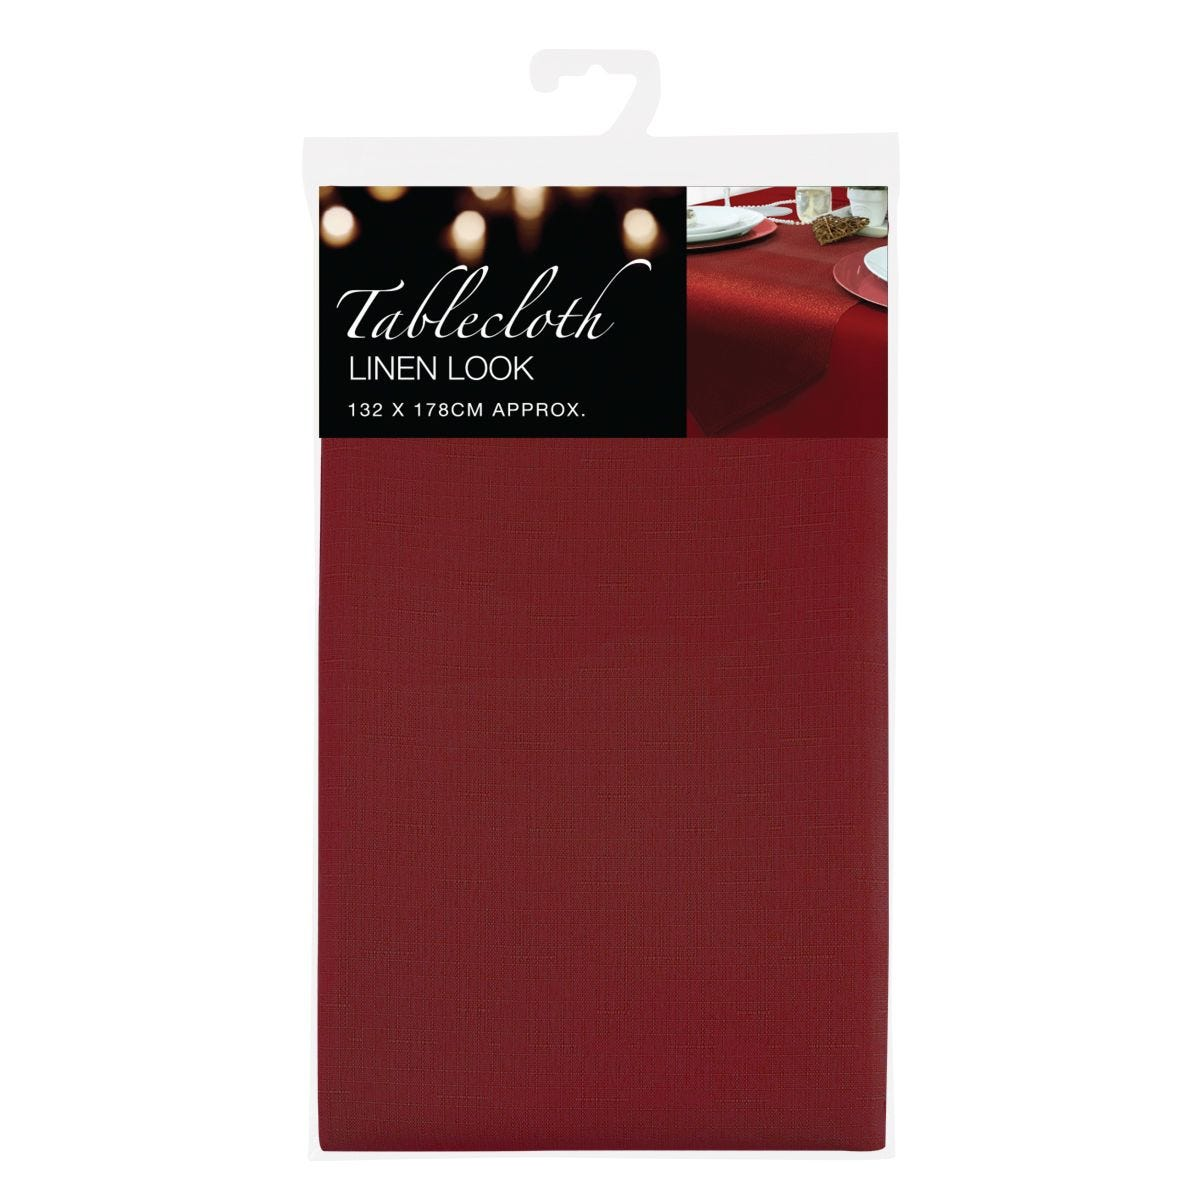 Red Linen Look Tablecloth